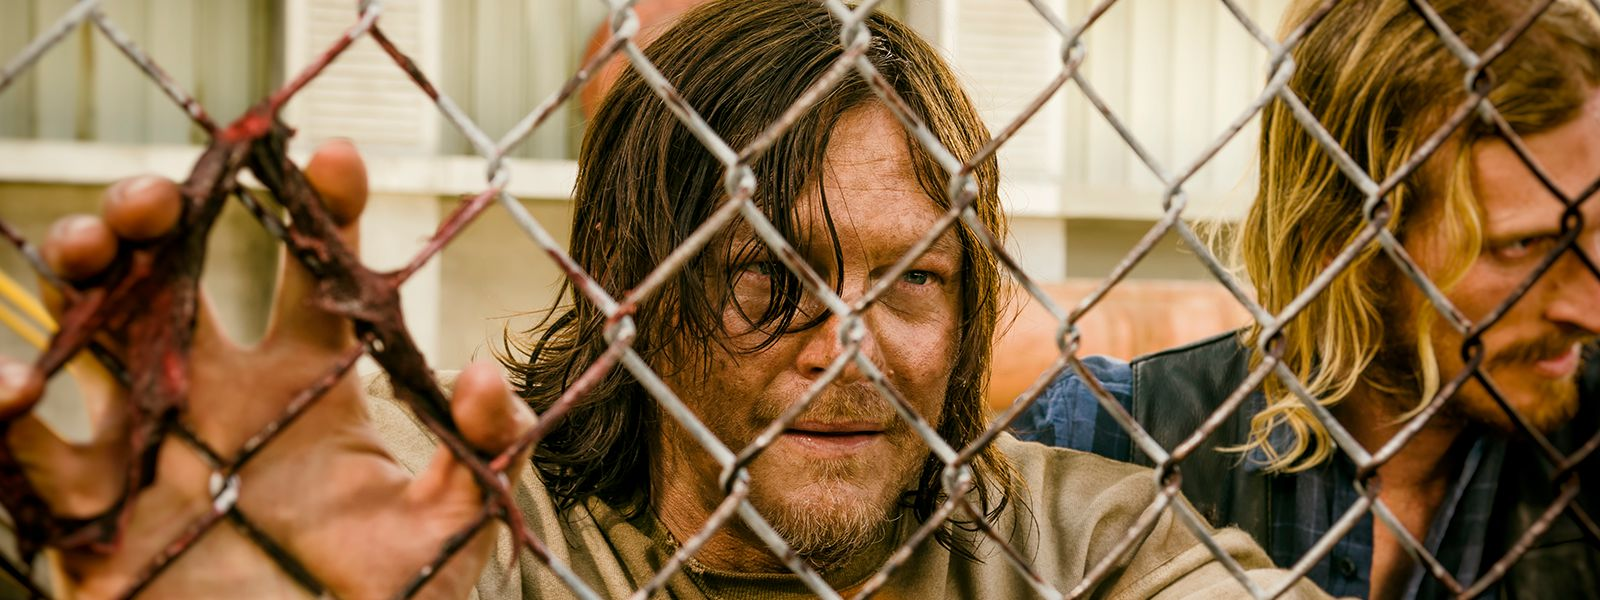 the-walking-dead-episode-703-daryl-reedus-dwight-amelio-post-800×600